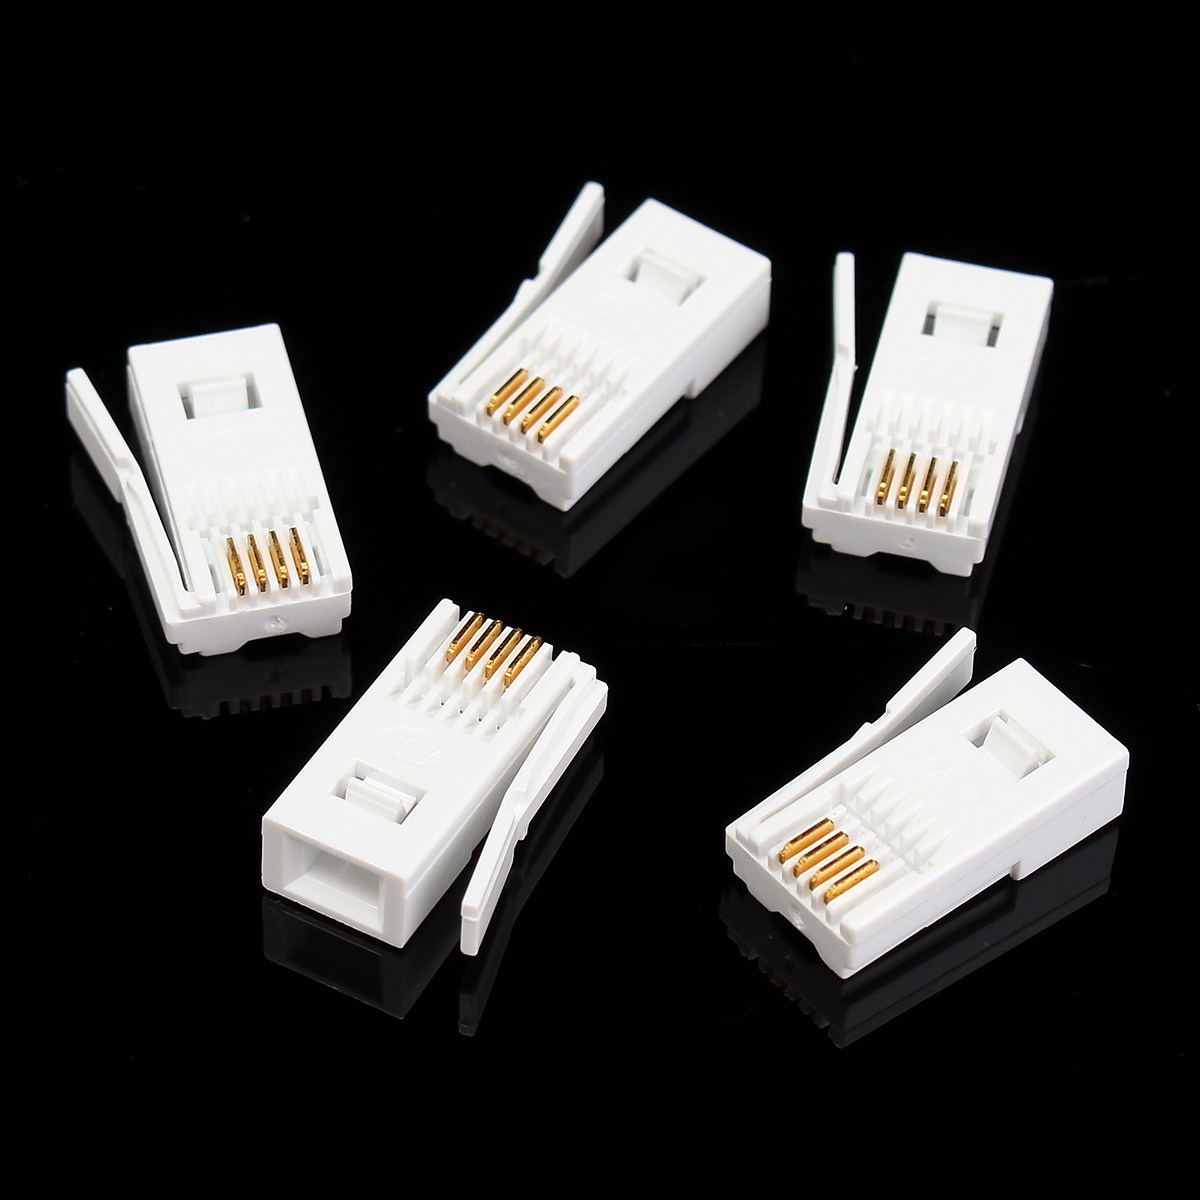 5pcs UK Telephone Crystal Head 6P4C RJ11 4-wire phone cord Telephone Wire Connector Panel Terminal For UK Phone